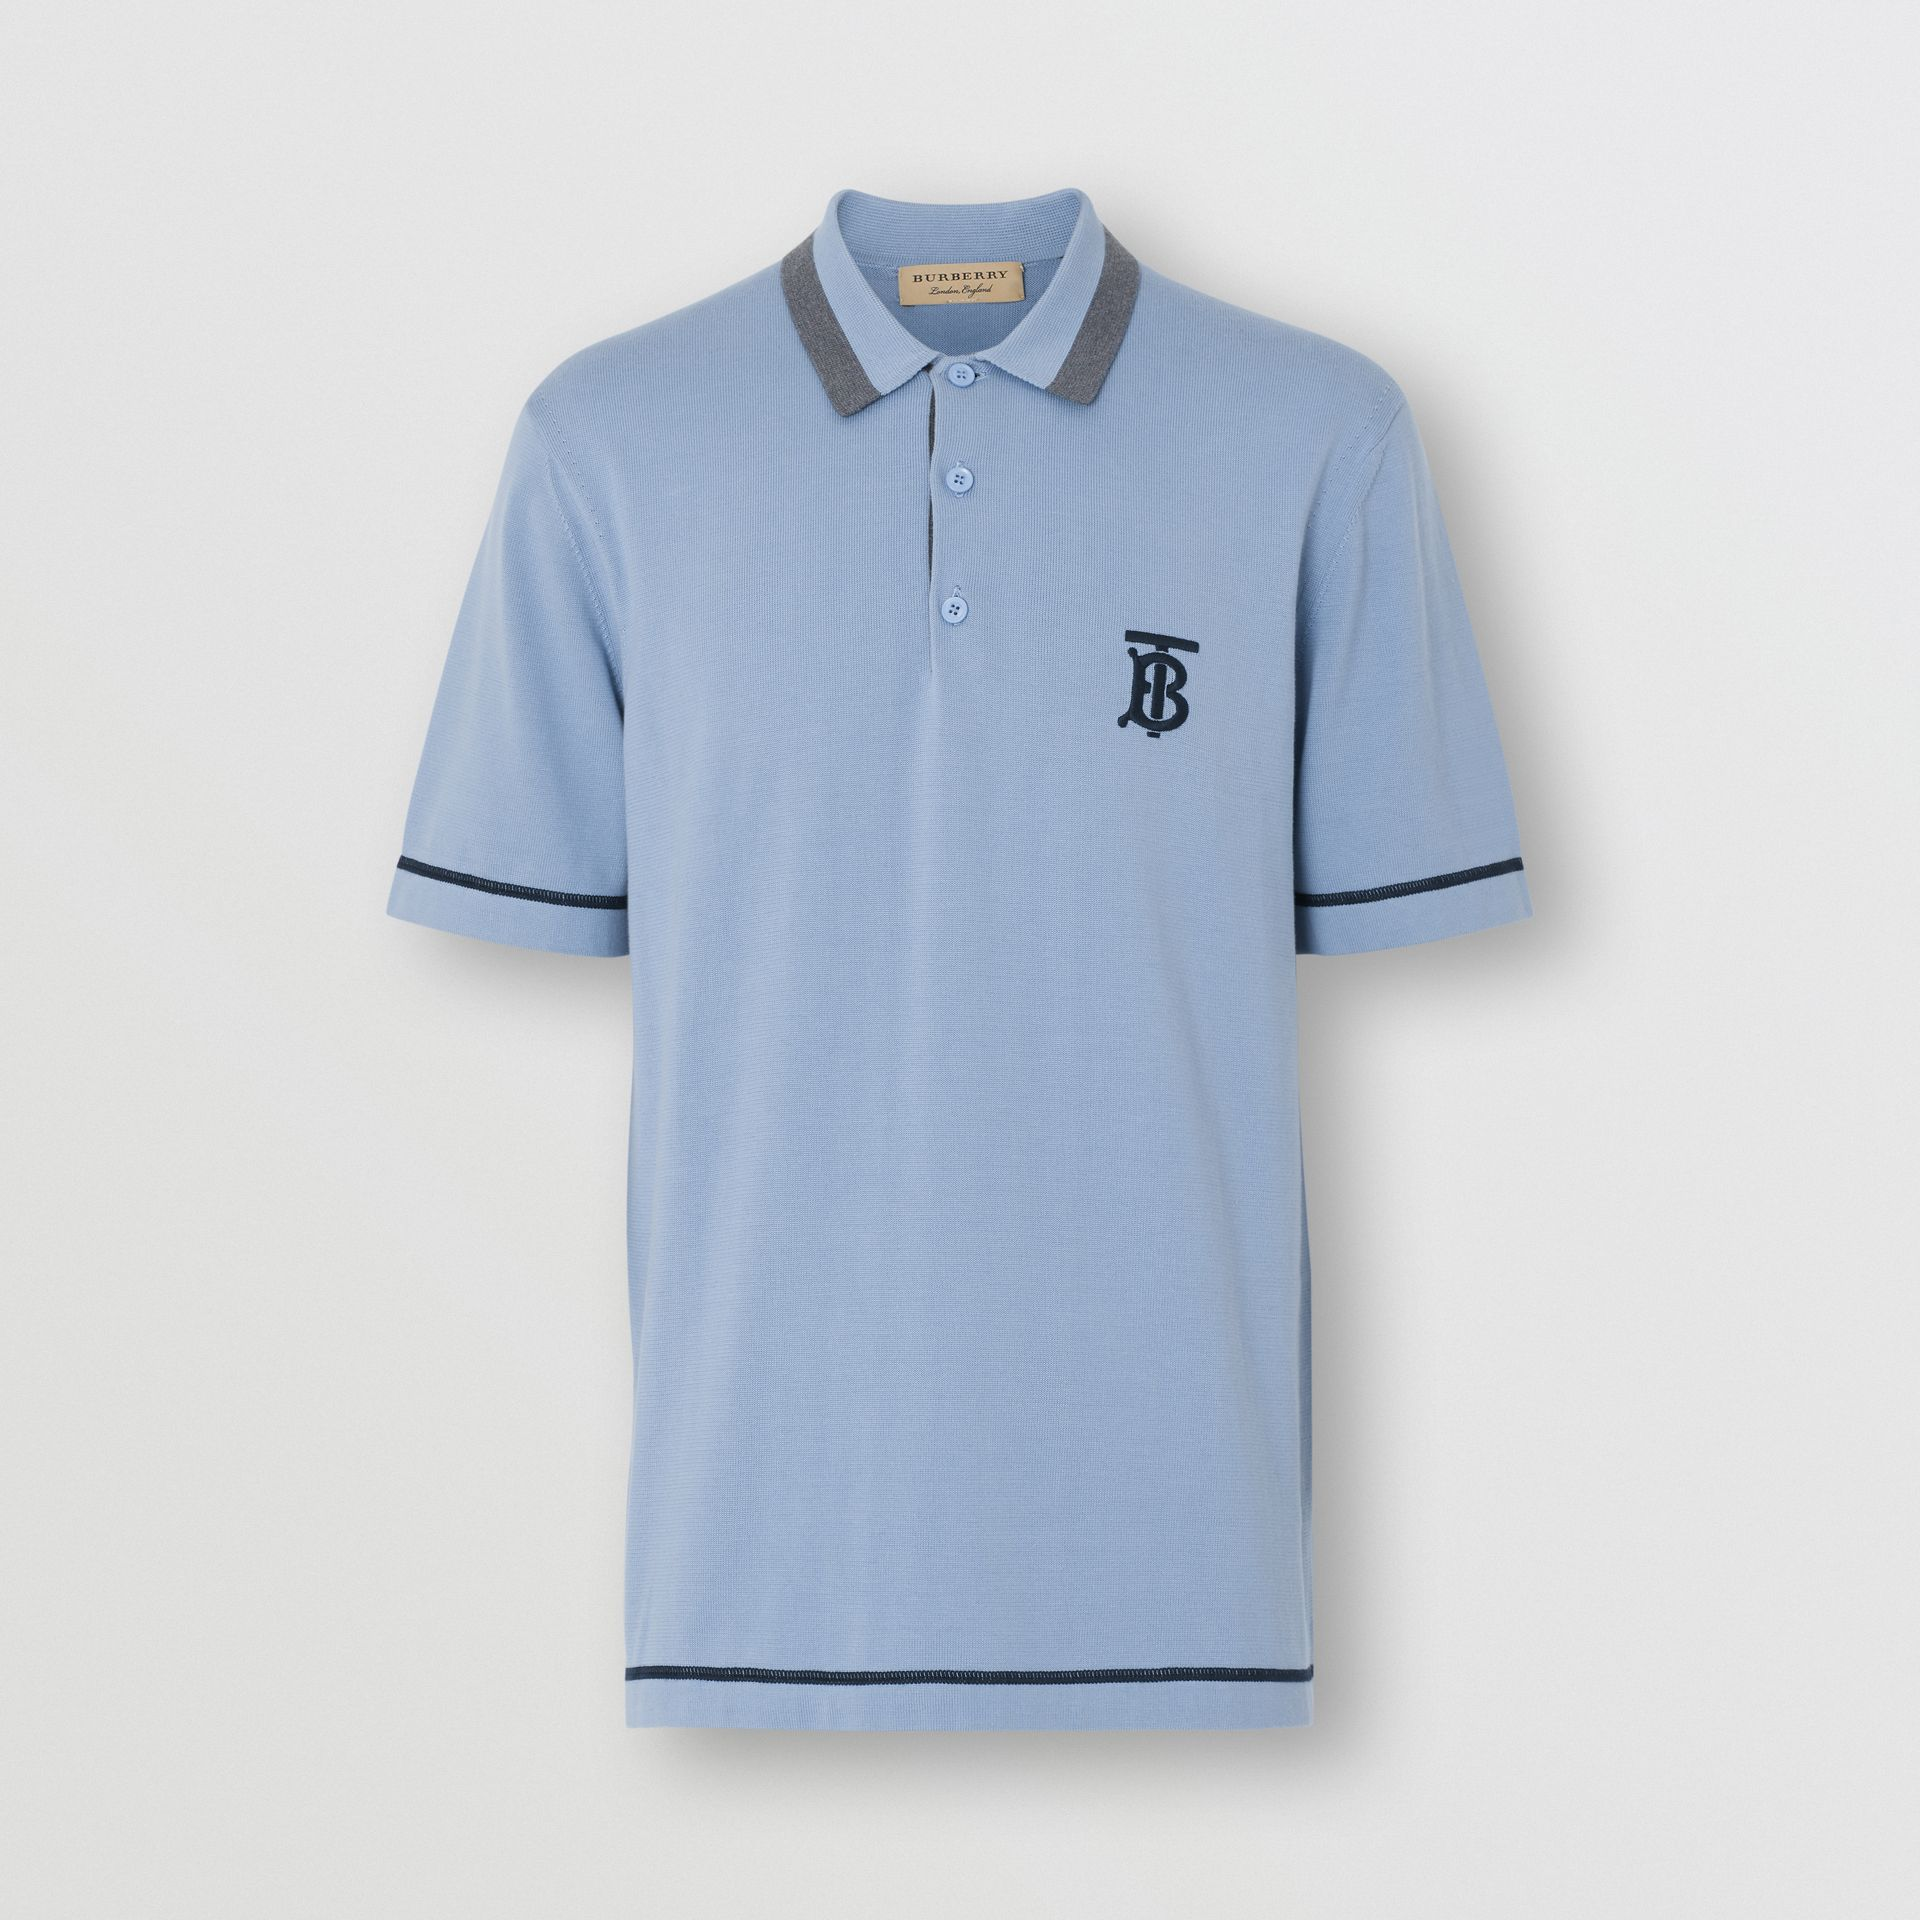 Monogram Motif Tipped Cotton Polo Shirt in Baby Blue - Men | Burberry Singapore - gallery image 3